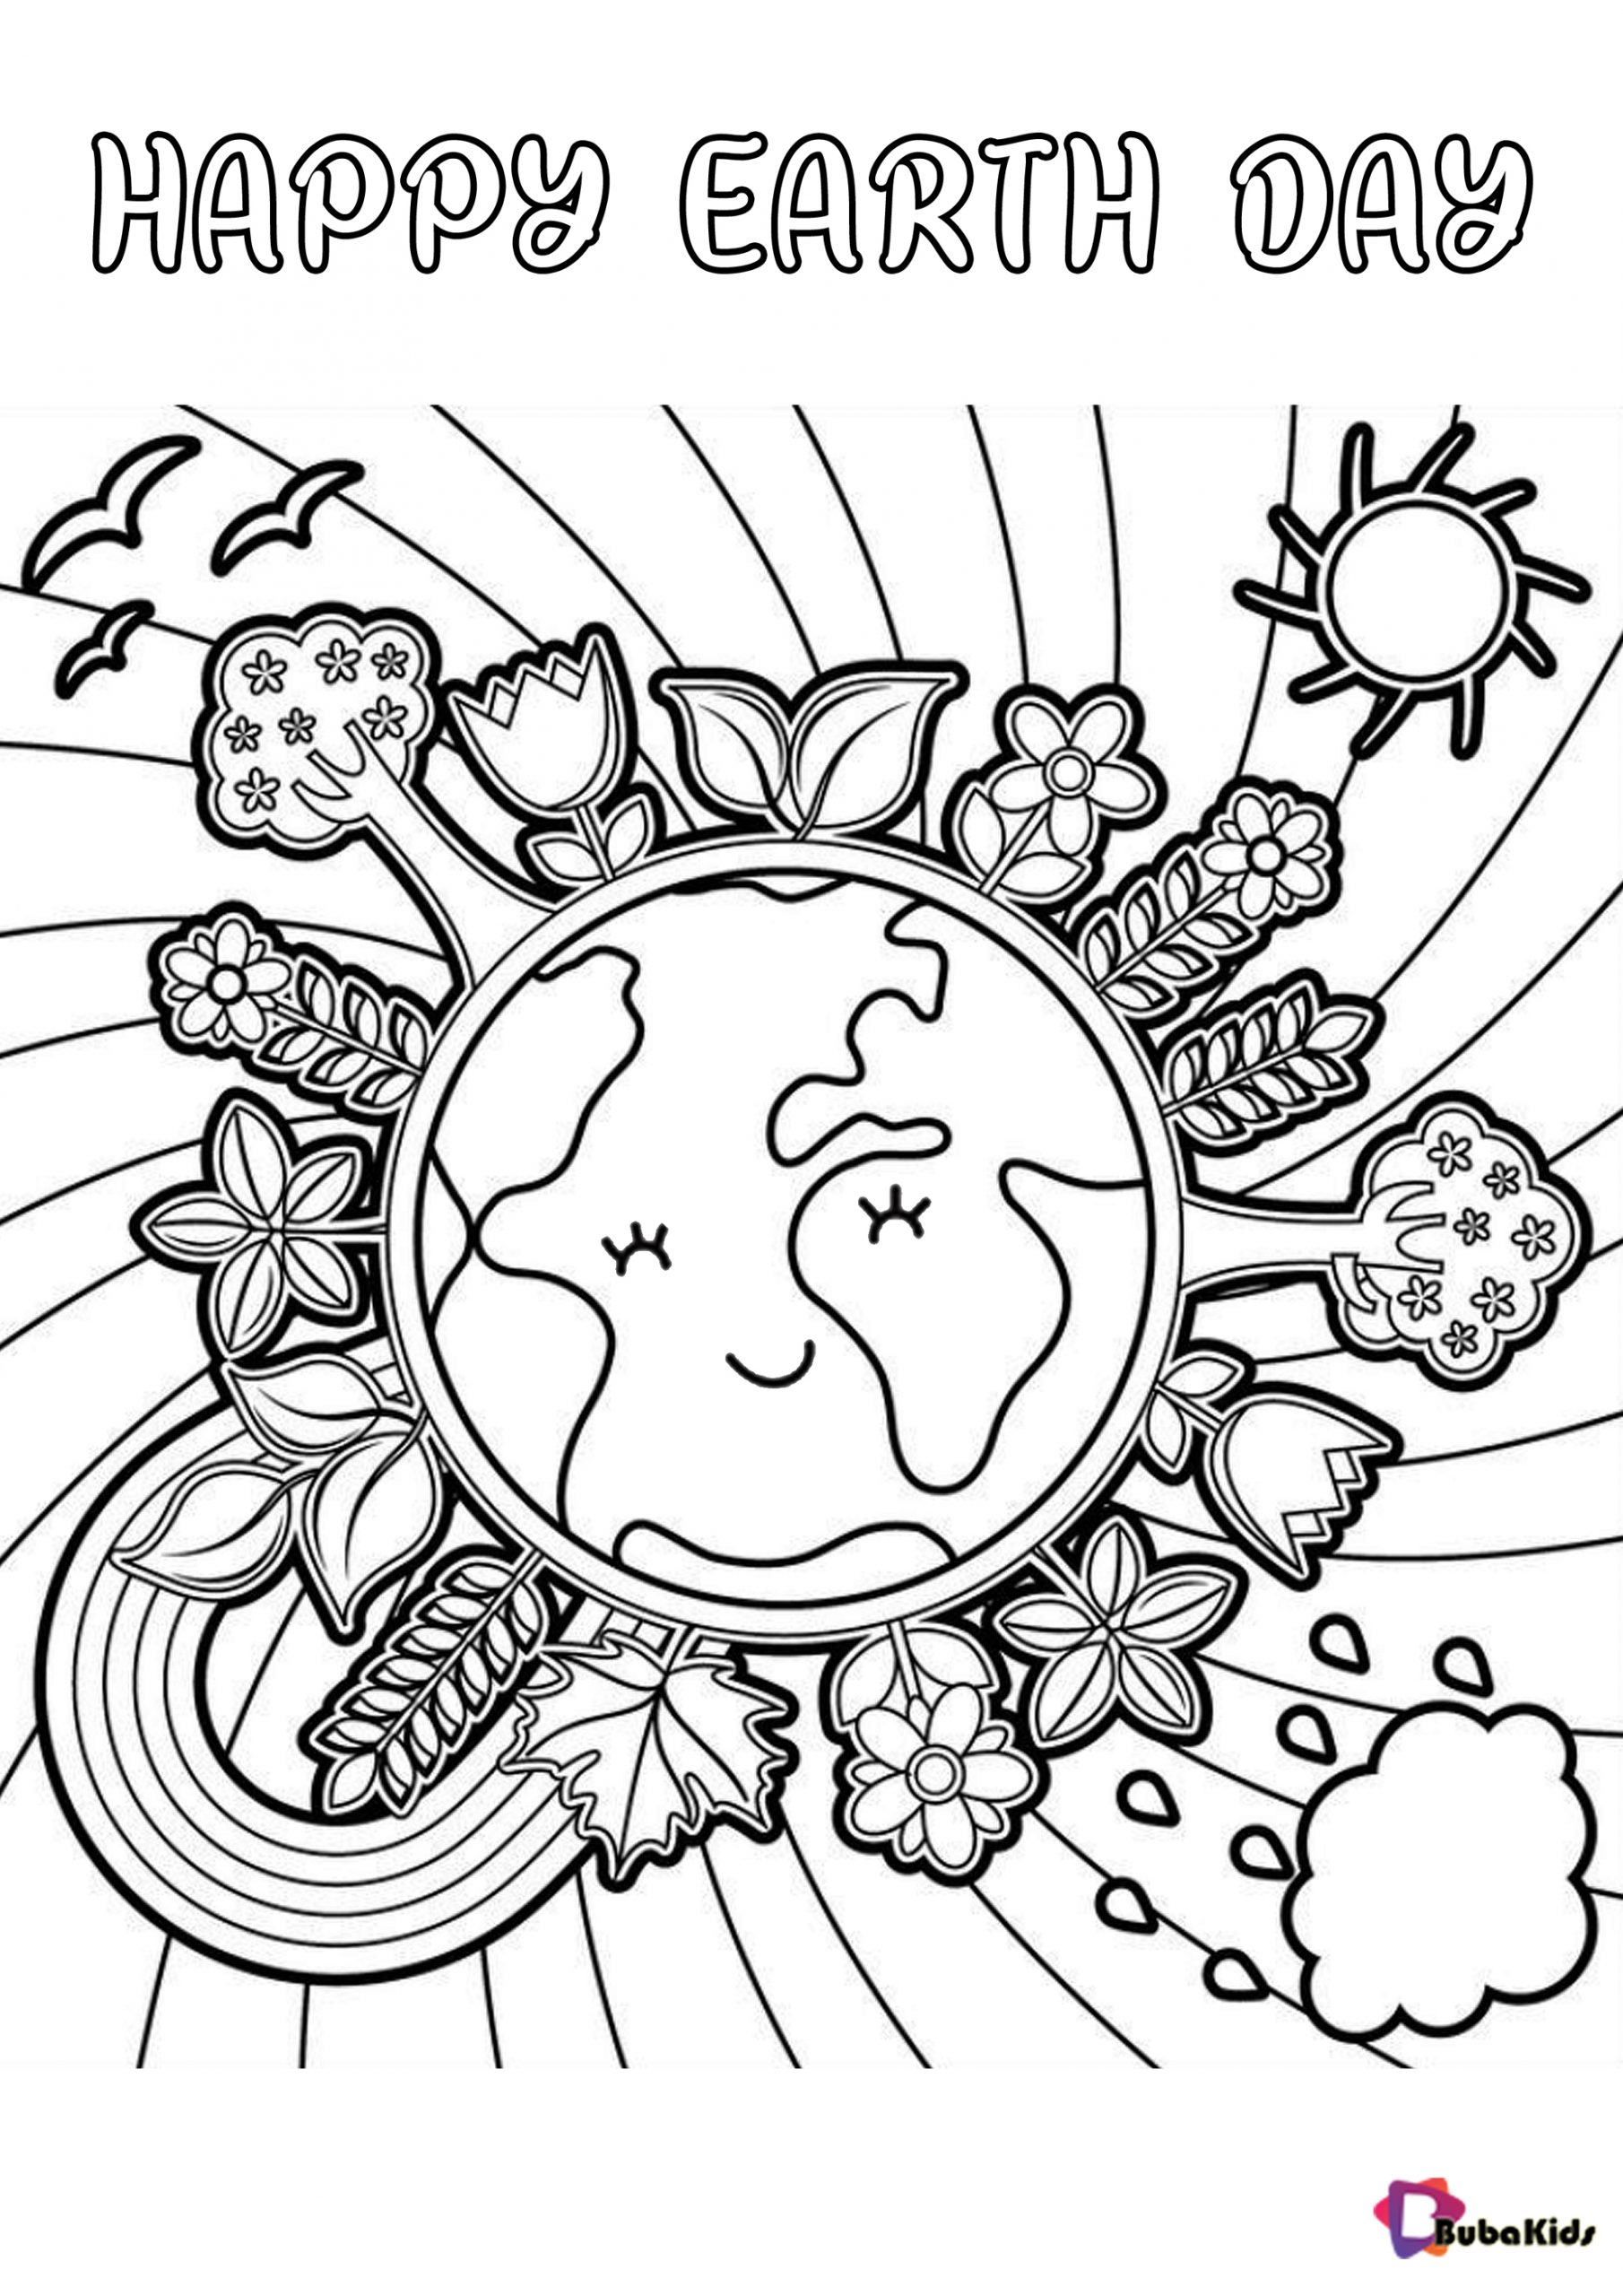 earth day coloring pictures free download happy earth day coloring sheet bubakidscom pictures earth coloring day